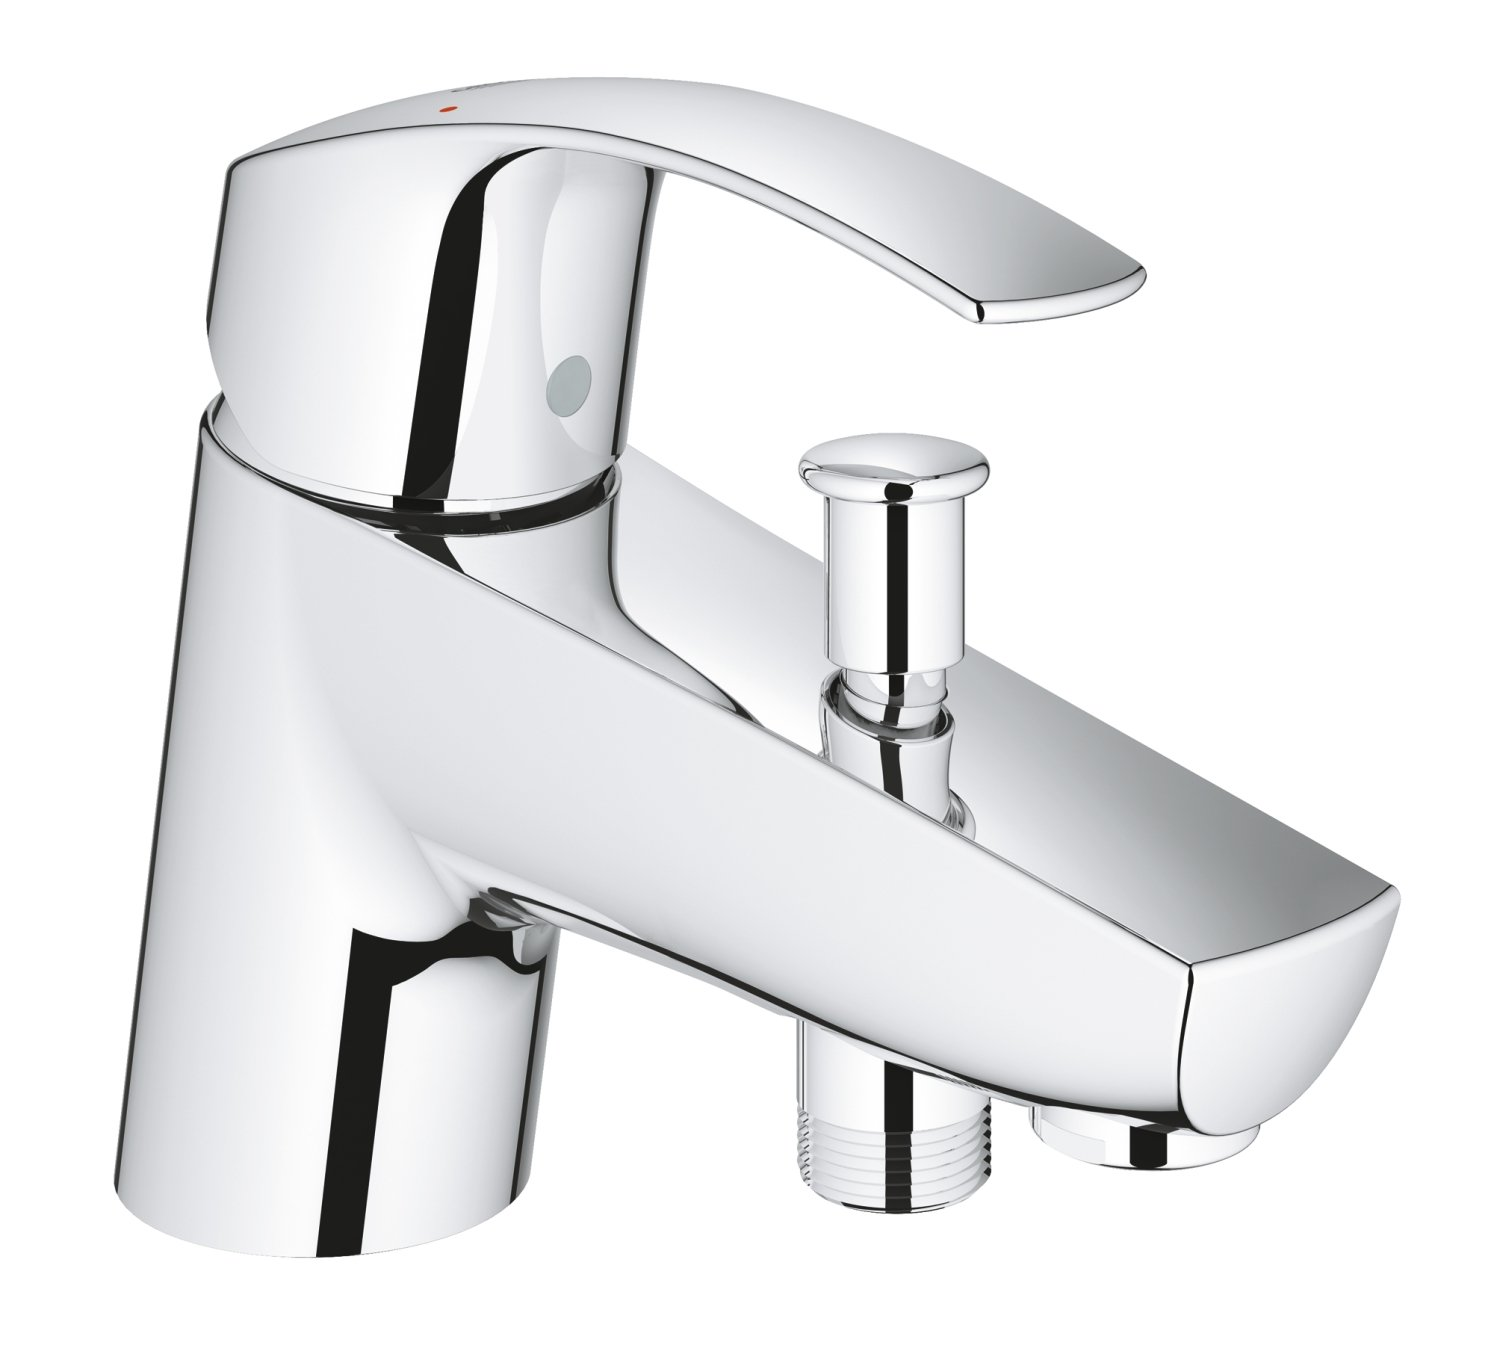 GROHE 33412002 Eurosmart Bath and Shower Mixer Tap - Chrome: Amazon ...